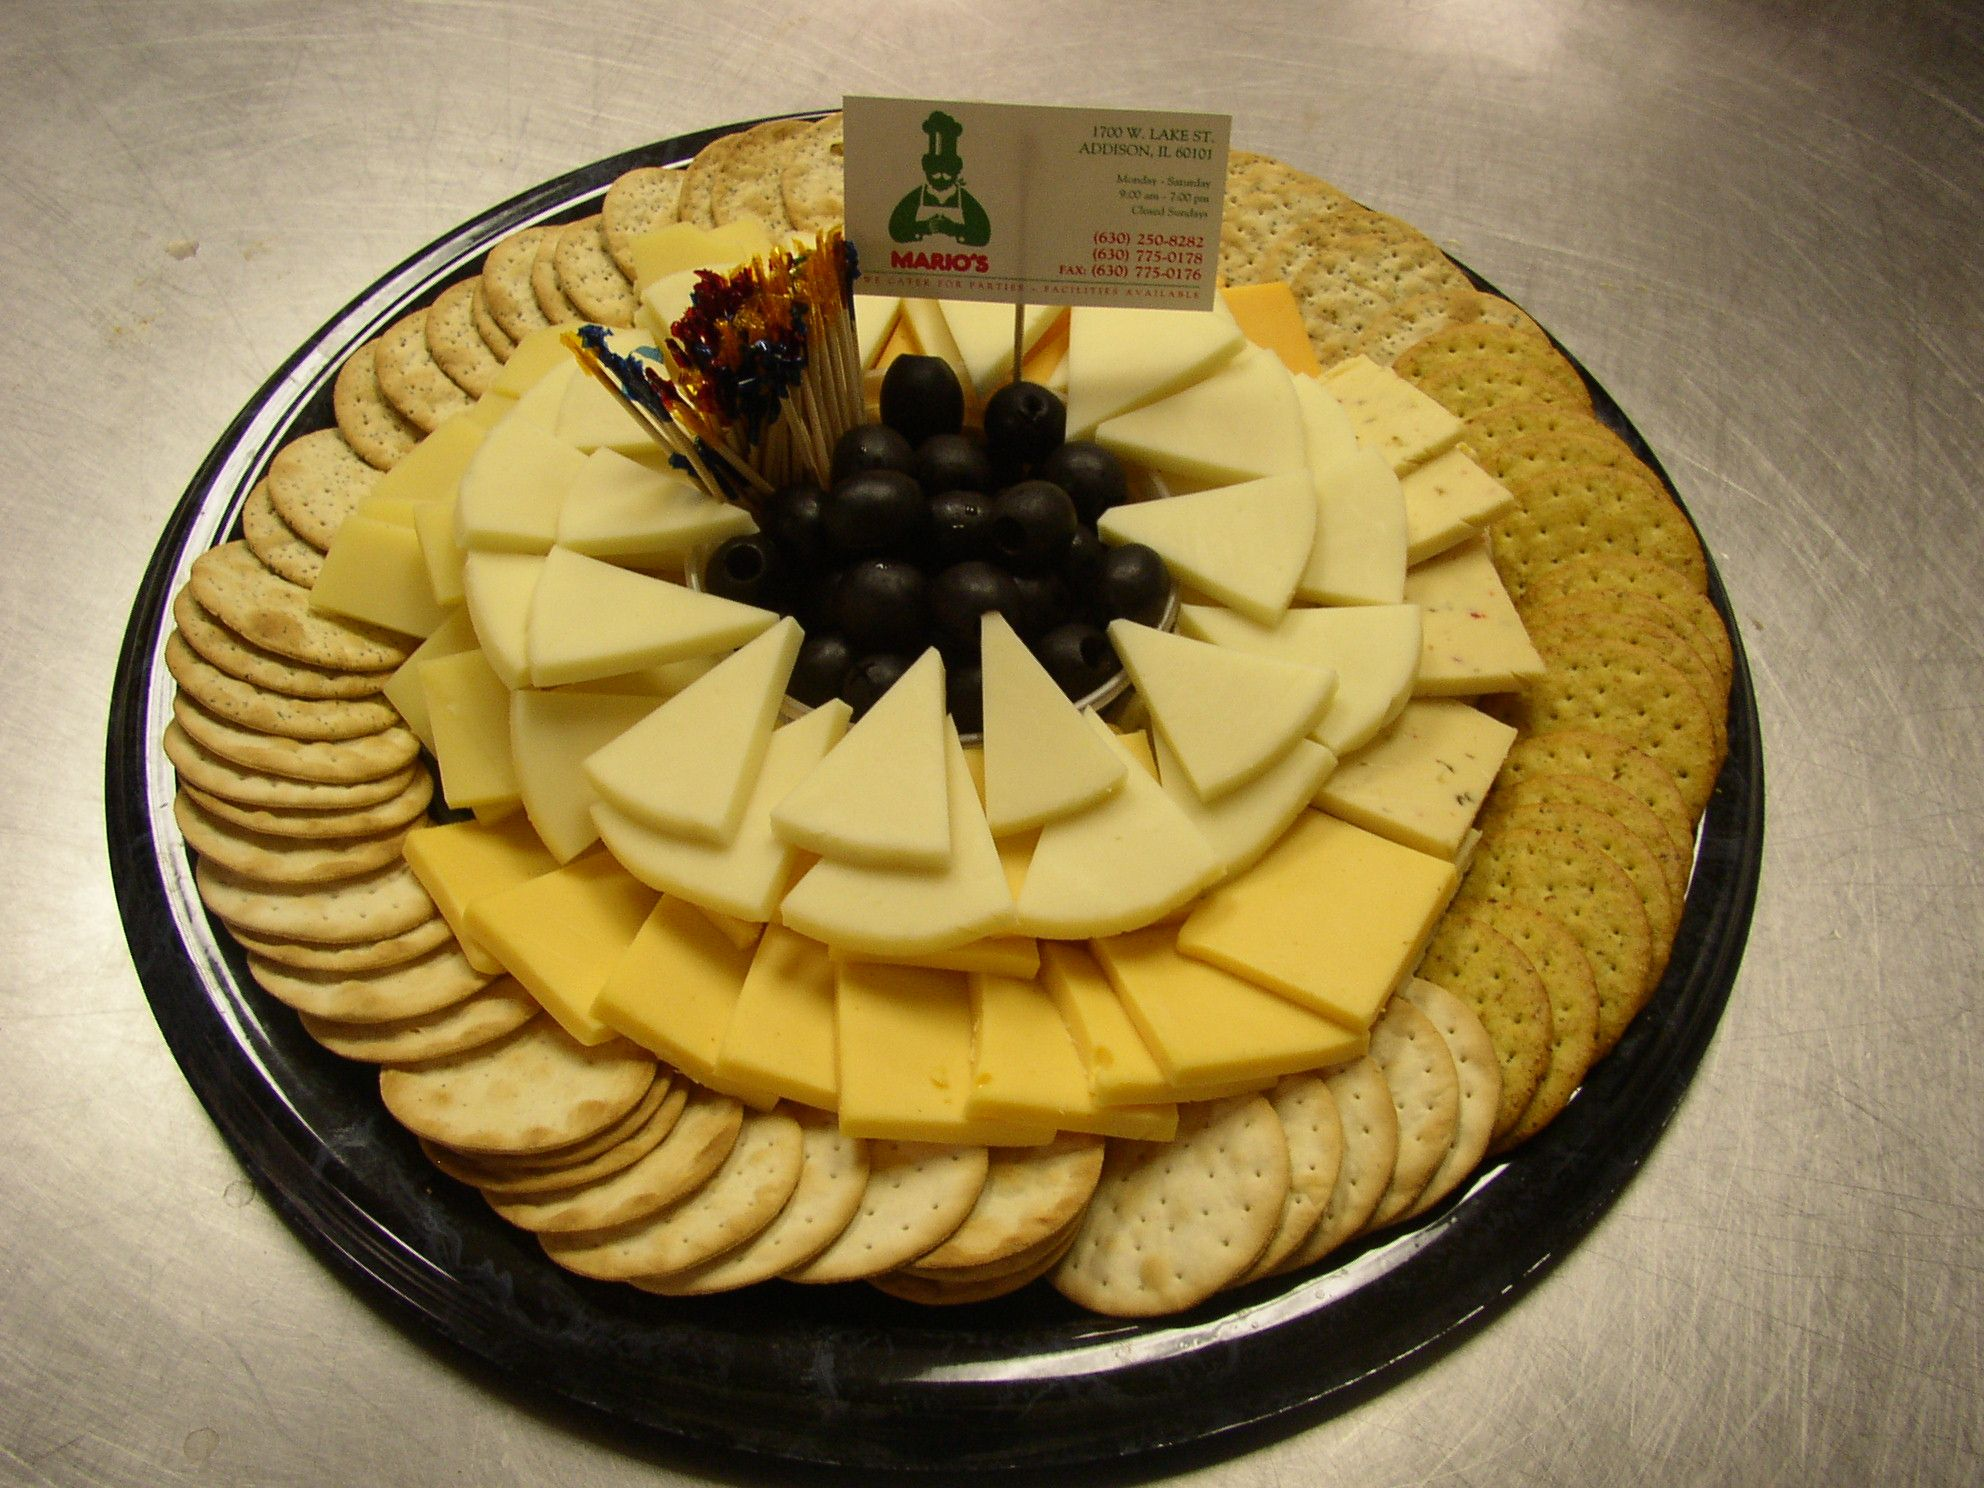 Buffet Libre Vigo Cracker And Cheese Platter Cheese Trays Choice Of Cheeses